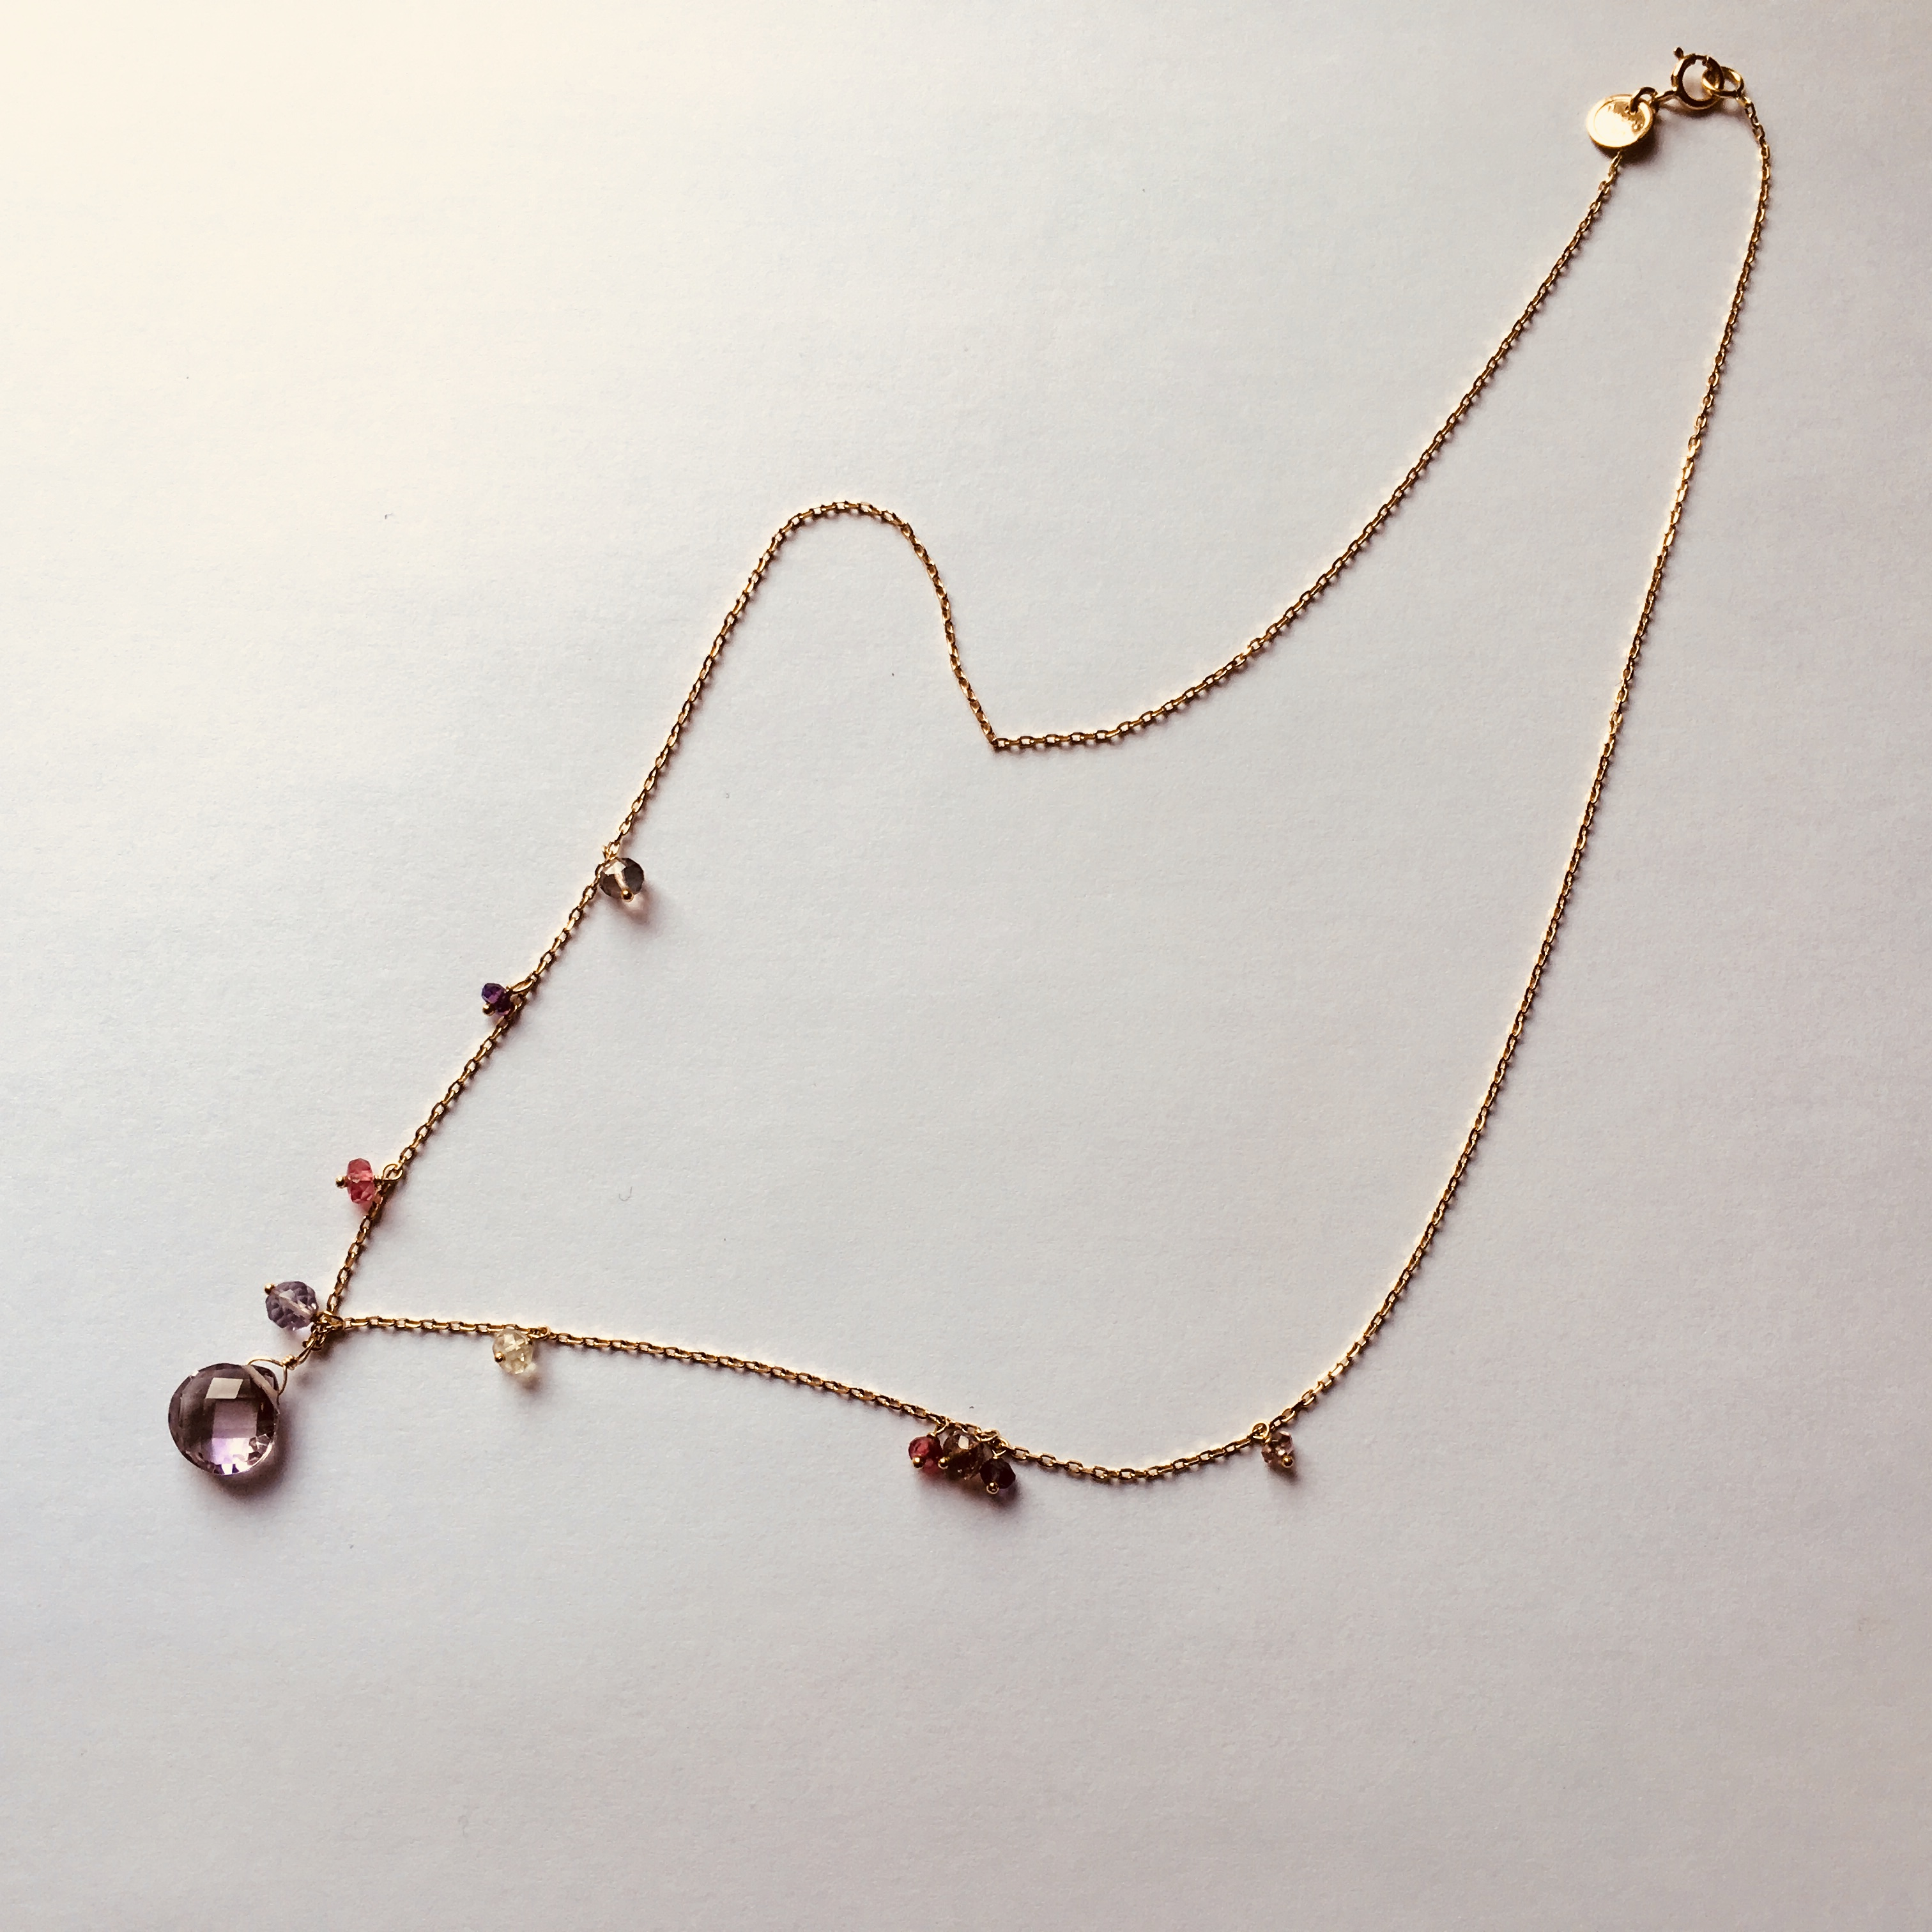 Necklace from Sweet Pea RRP £660 Image